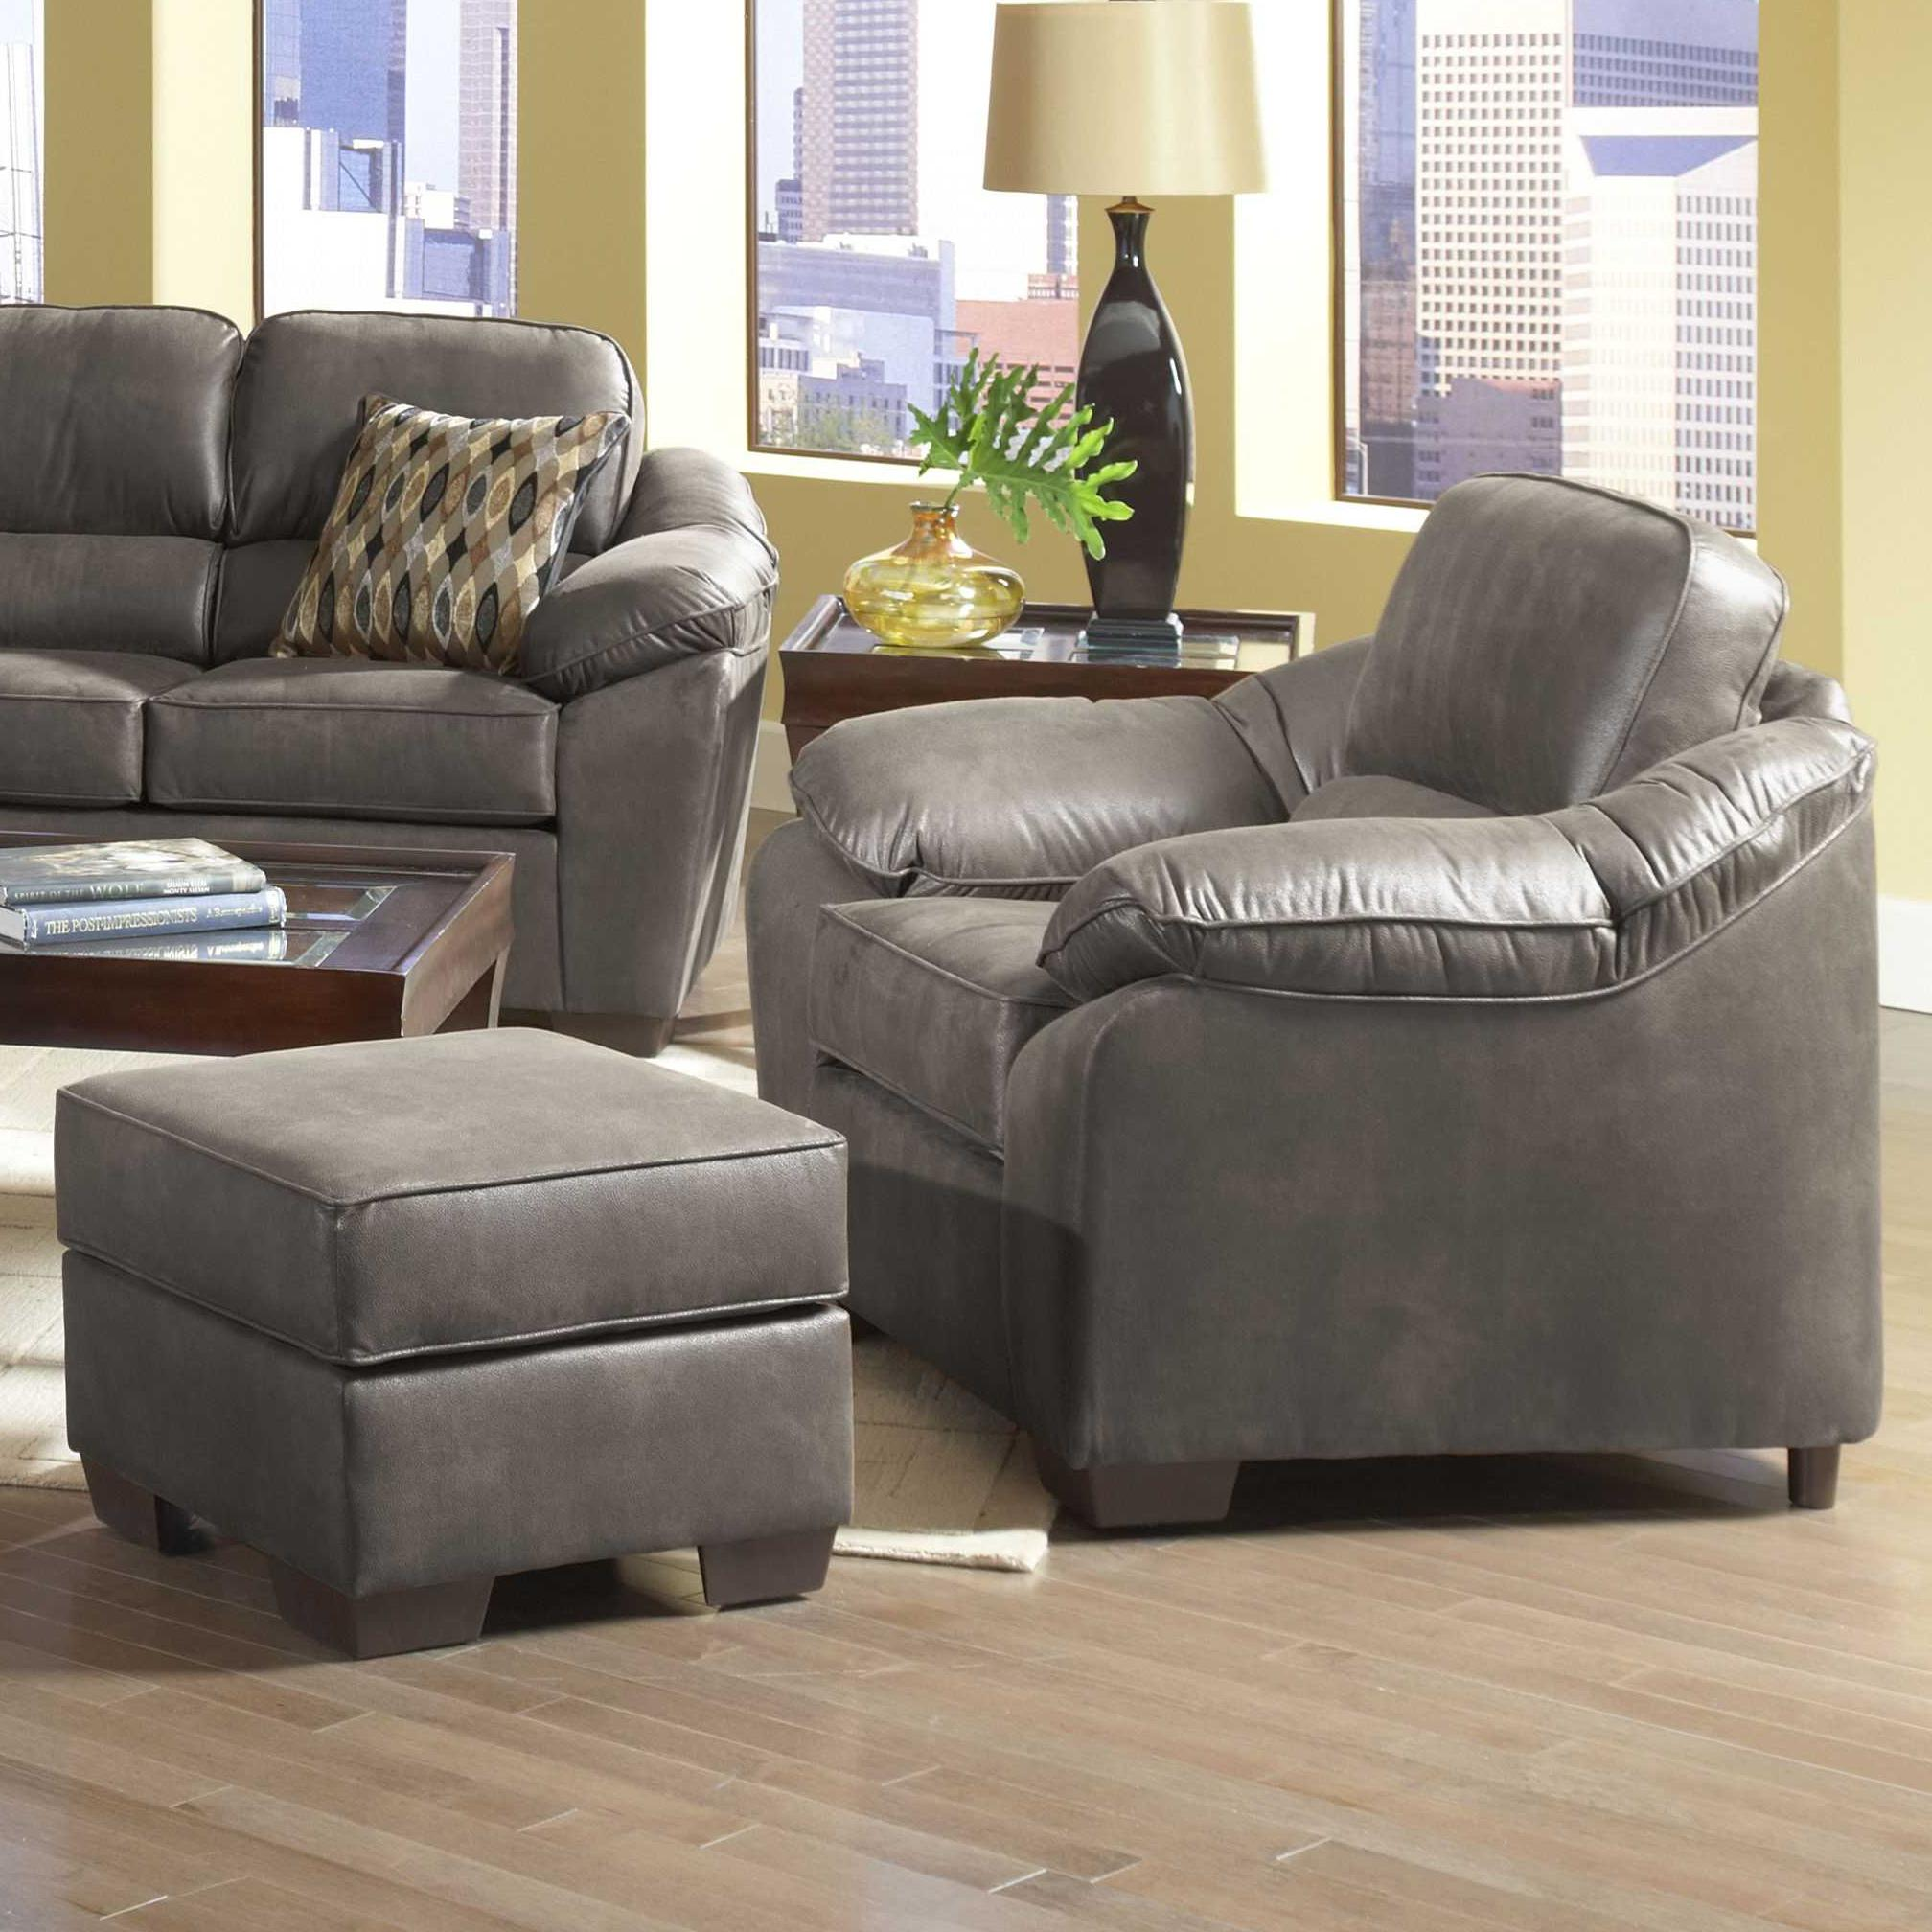 Serta Upholstery 3800 Chair and Ottoman Set - Item Number: 3800 C + O